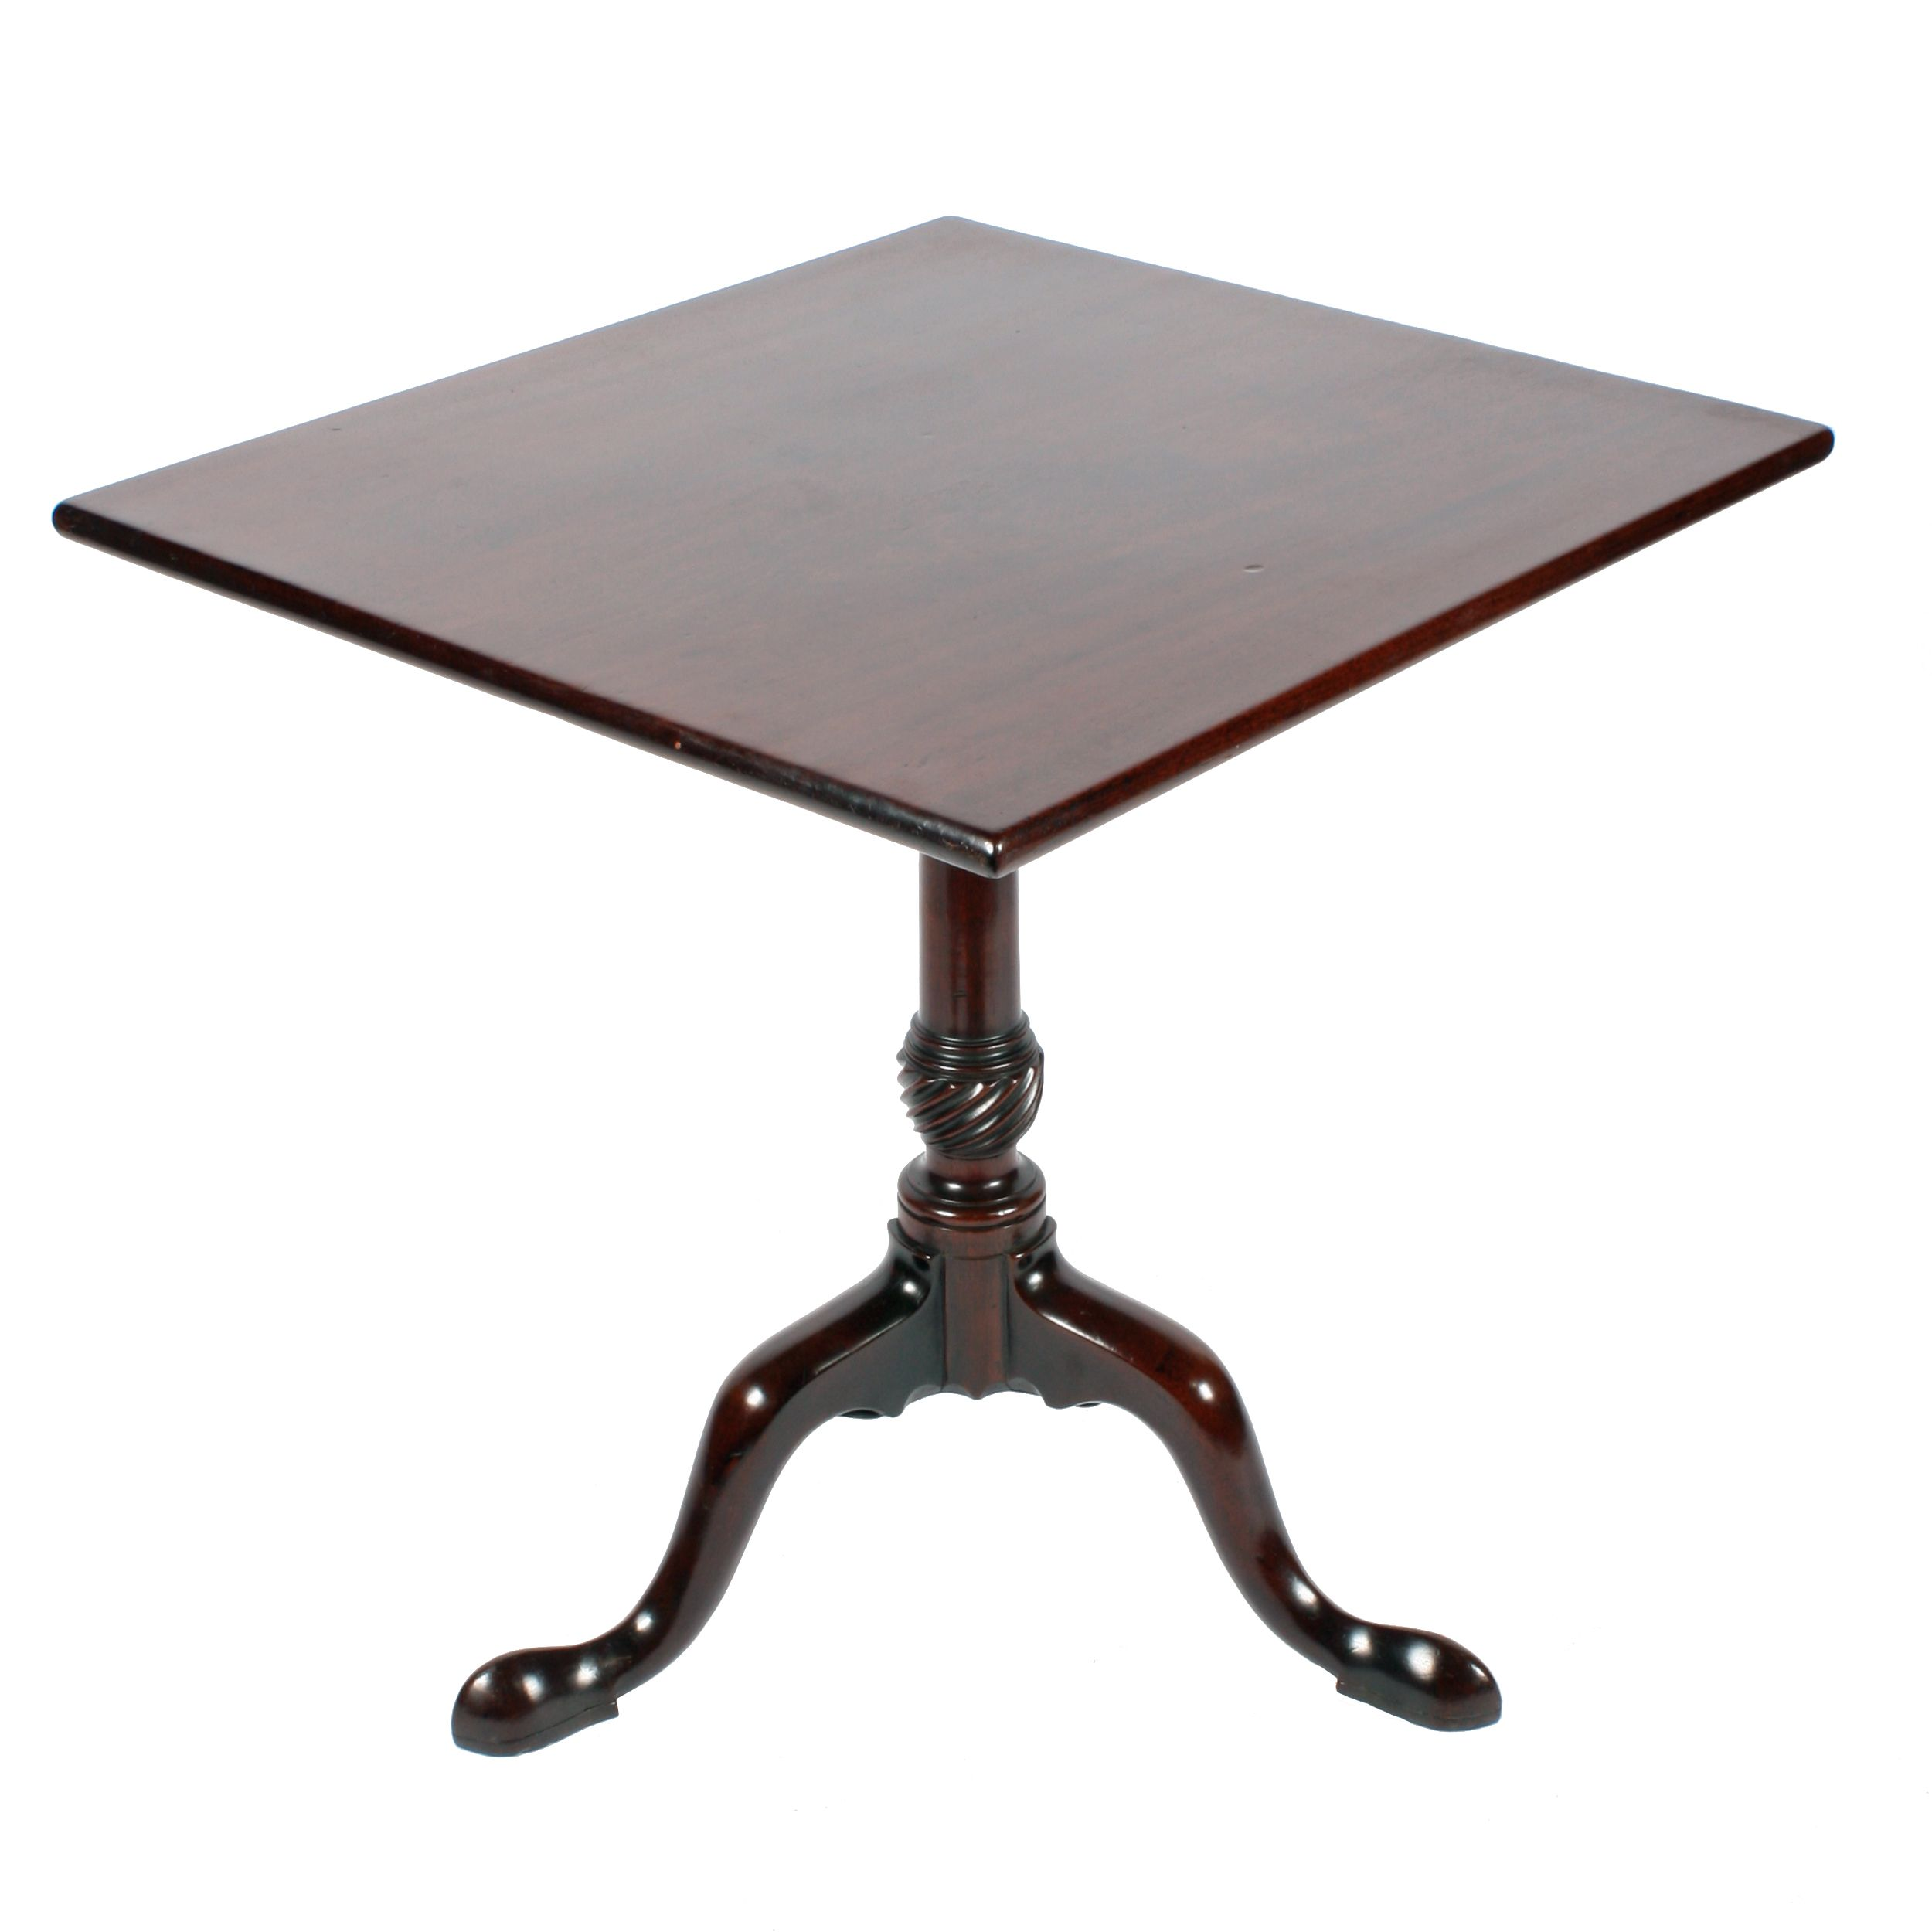 georgian tip top table  antique tables  pinterest  tabella c  - georgian tip top table